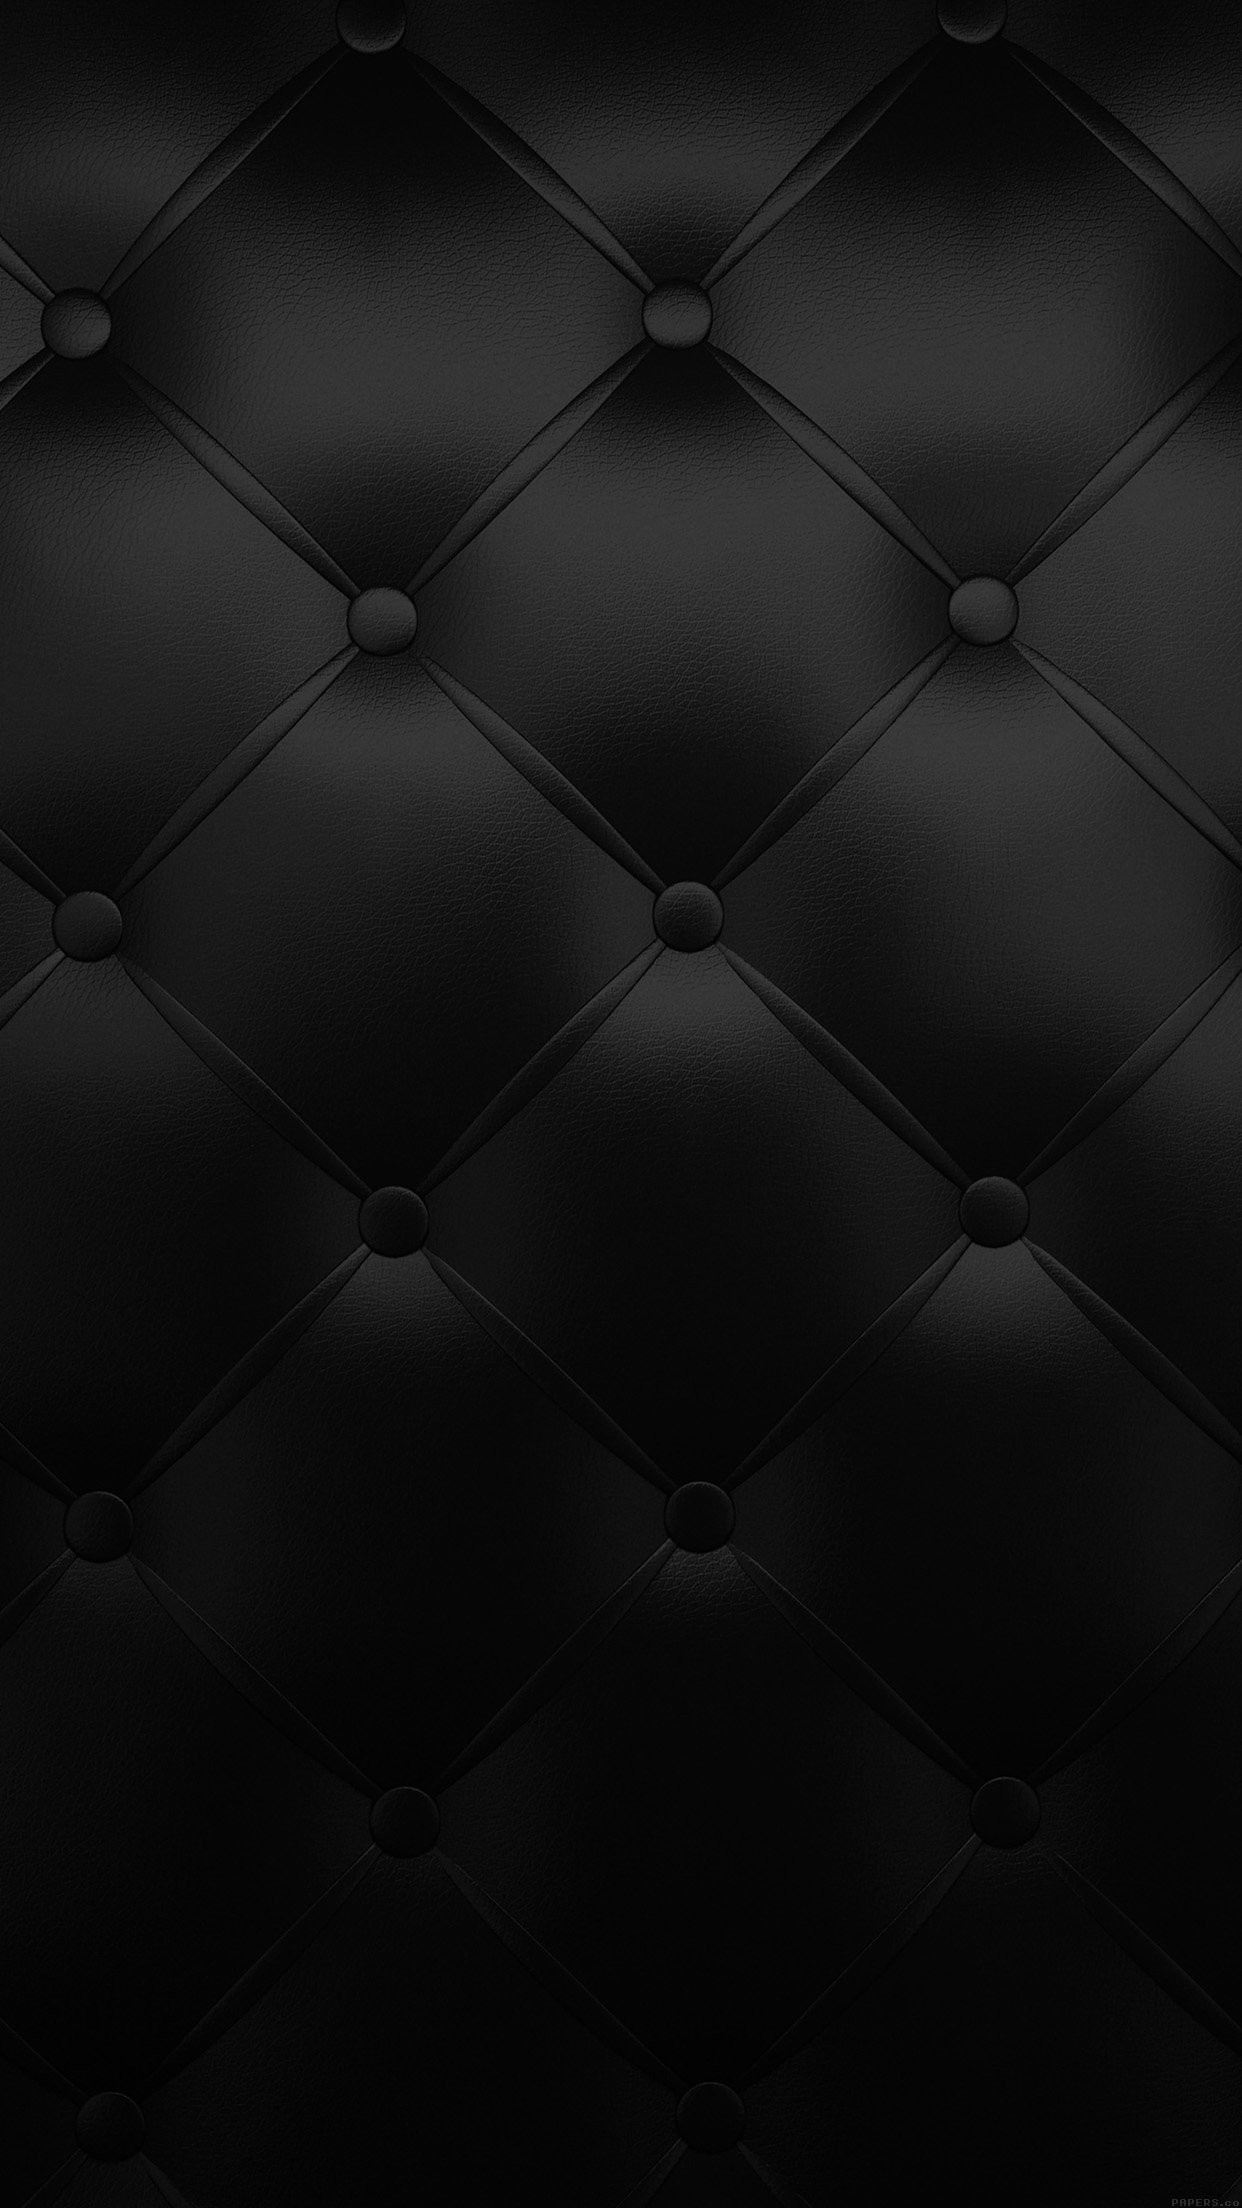 1242x2208 space-black-abstract-cimon-cpage-pattern-art-34-